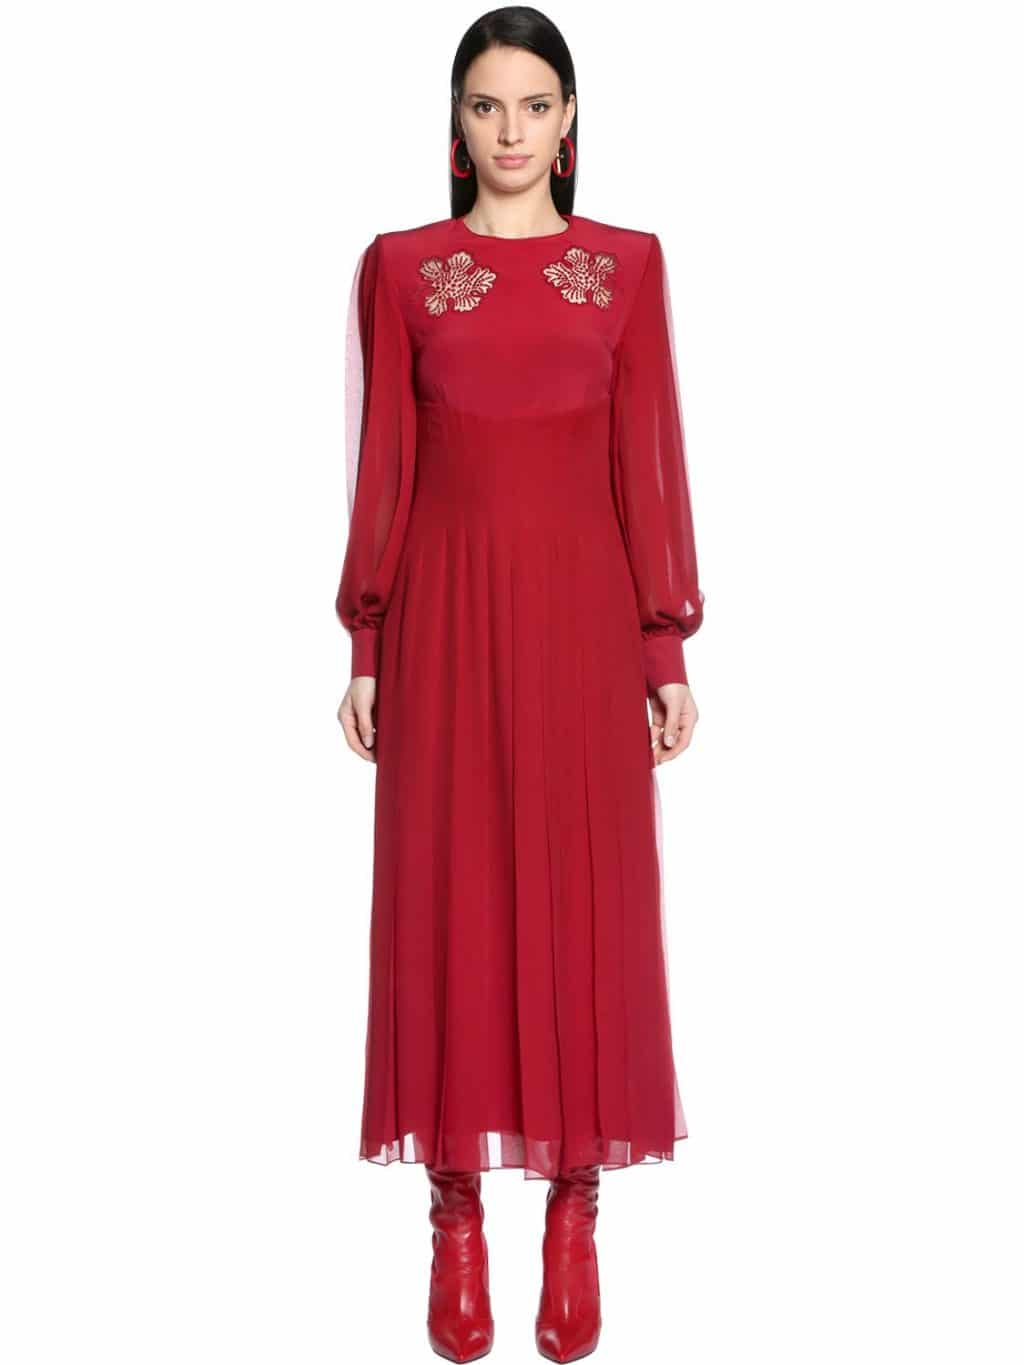 FENDI Embroidered Crepe & Silk Georgette Red Dress - We Select Dresses